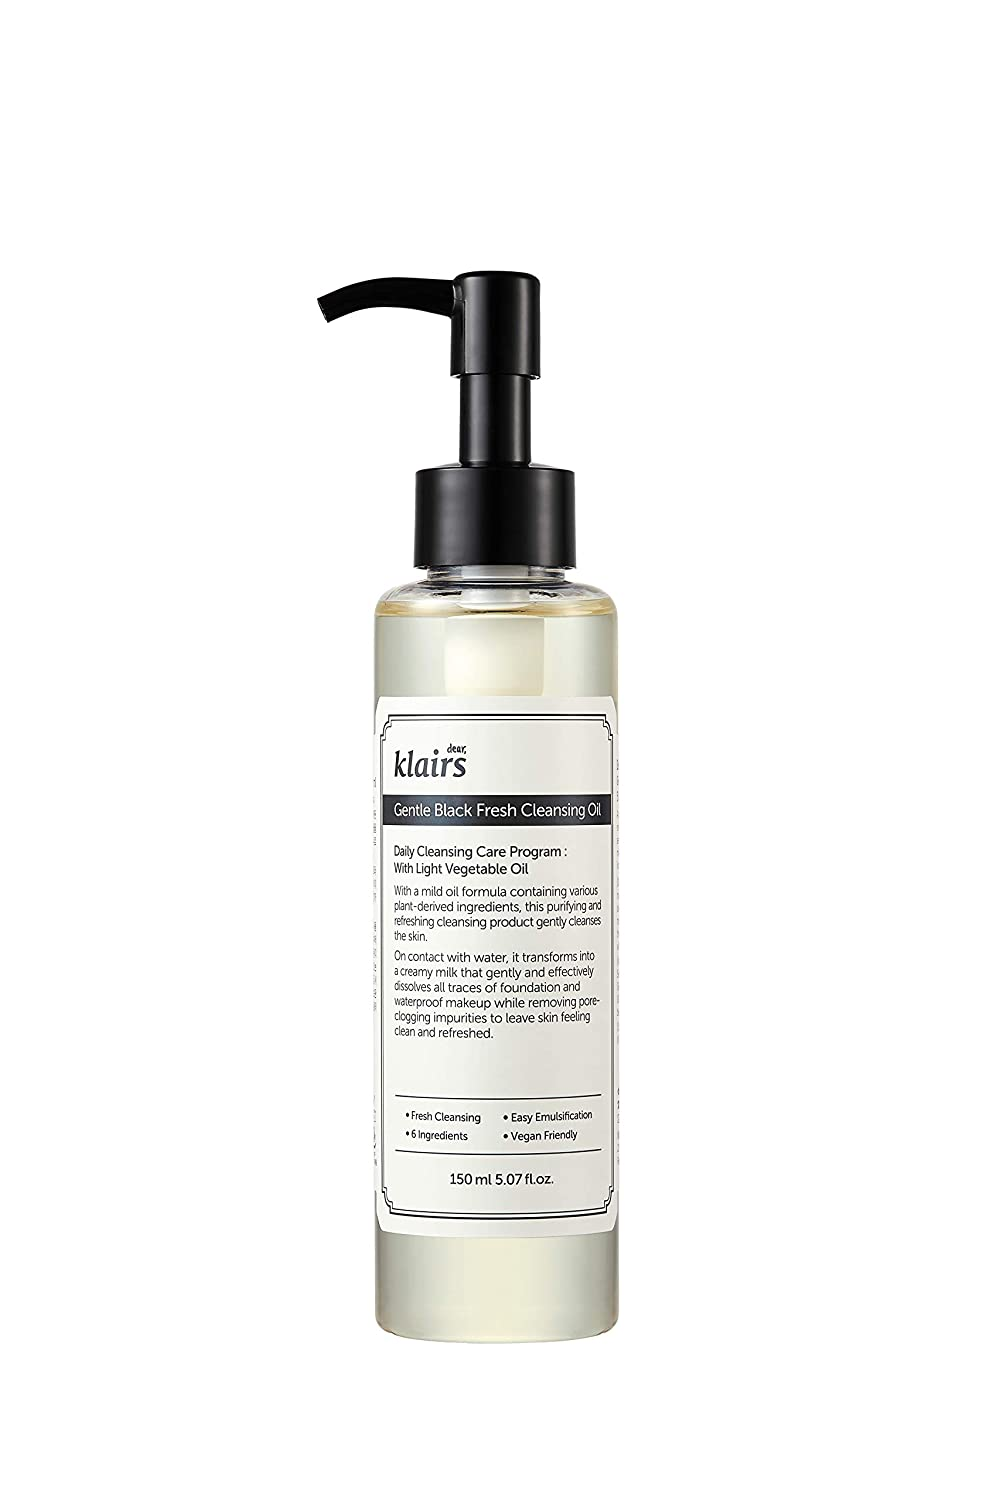 [DearKlairs] Gentle Black Fresh Cleansing Oil, 5.07 Fl Oz, a light and spreadable texture, only 6 ingredients